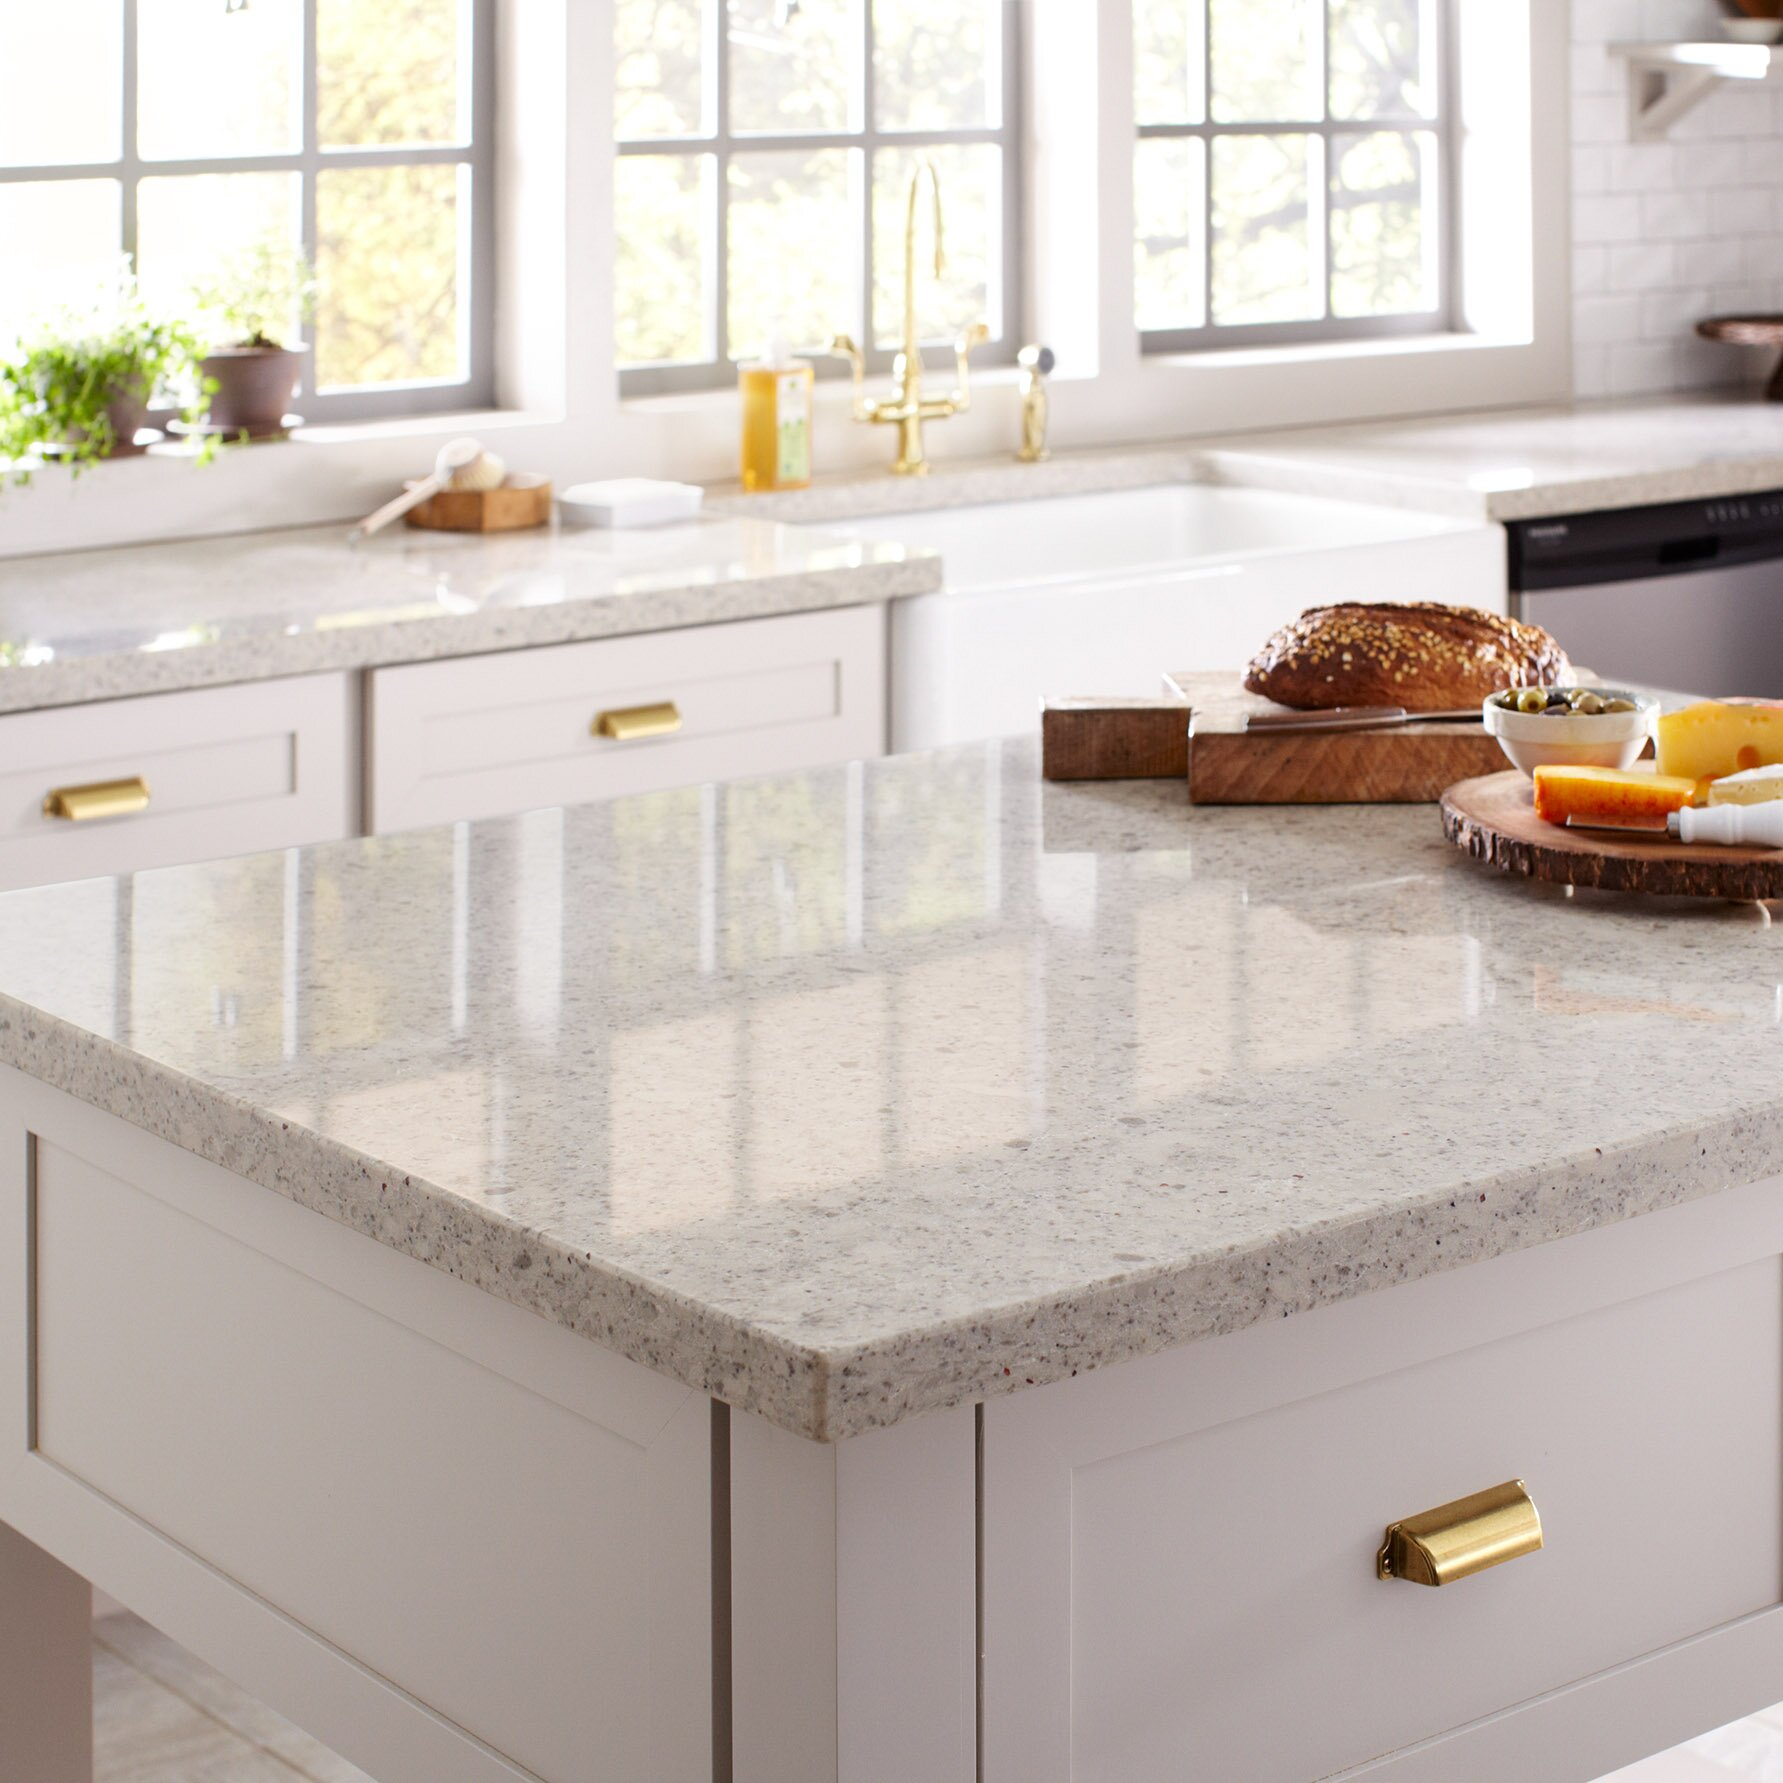 How to Choose Between Quartz or Granite Kitchen Countertops ...